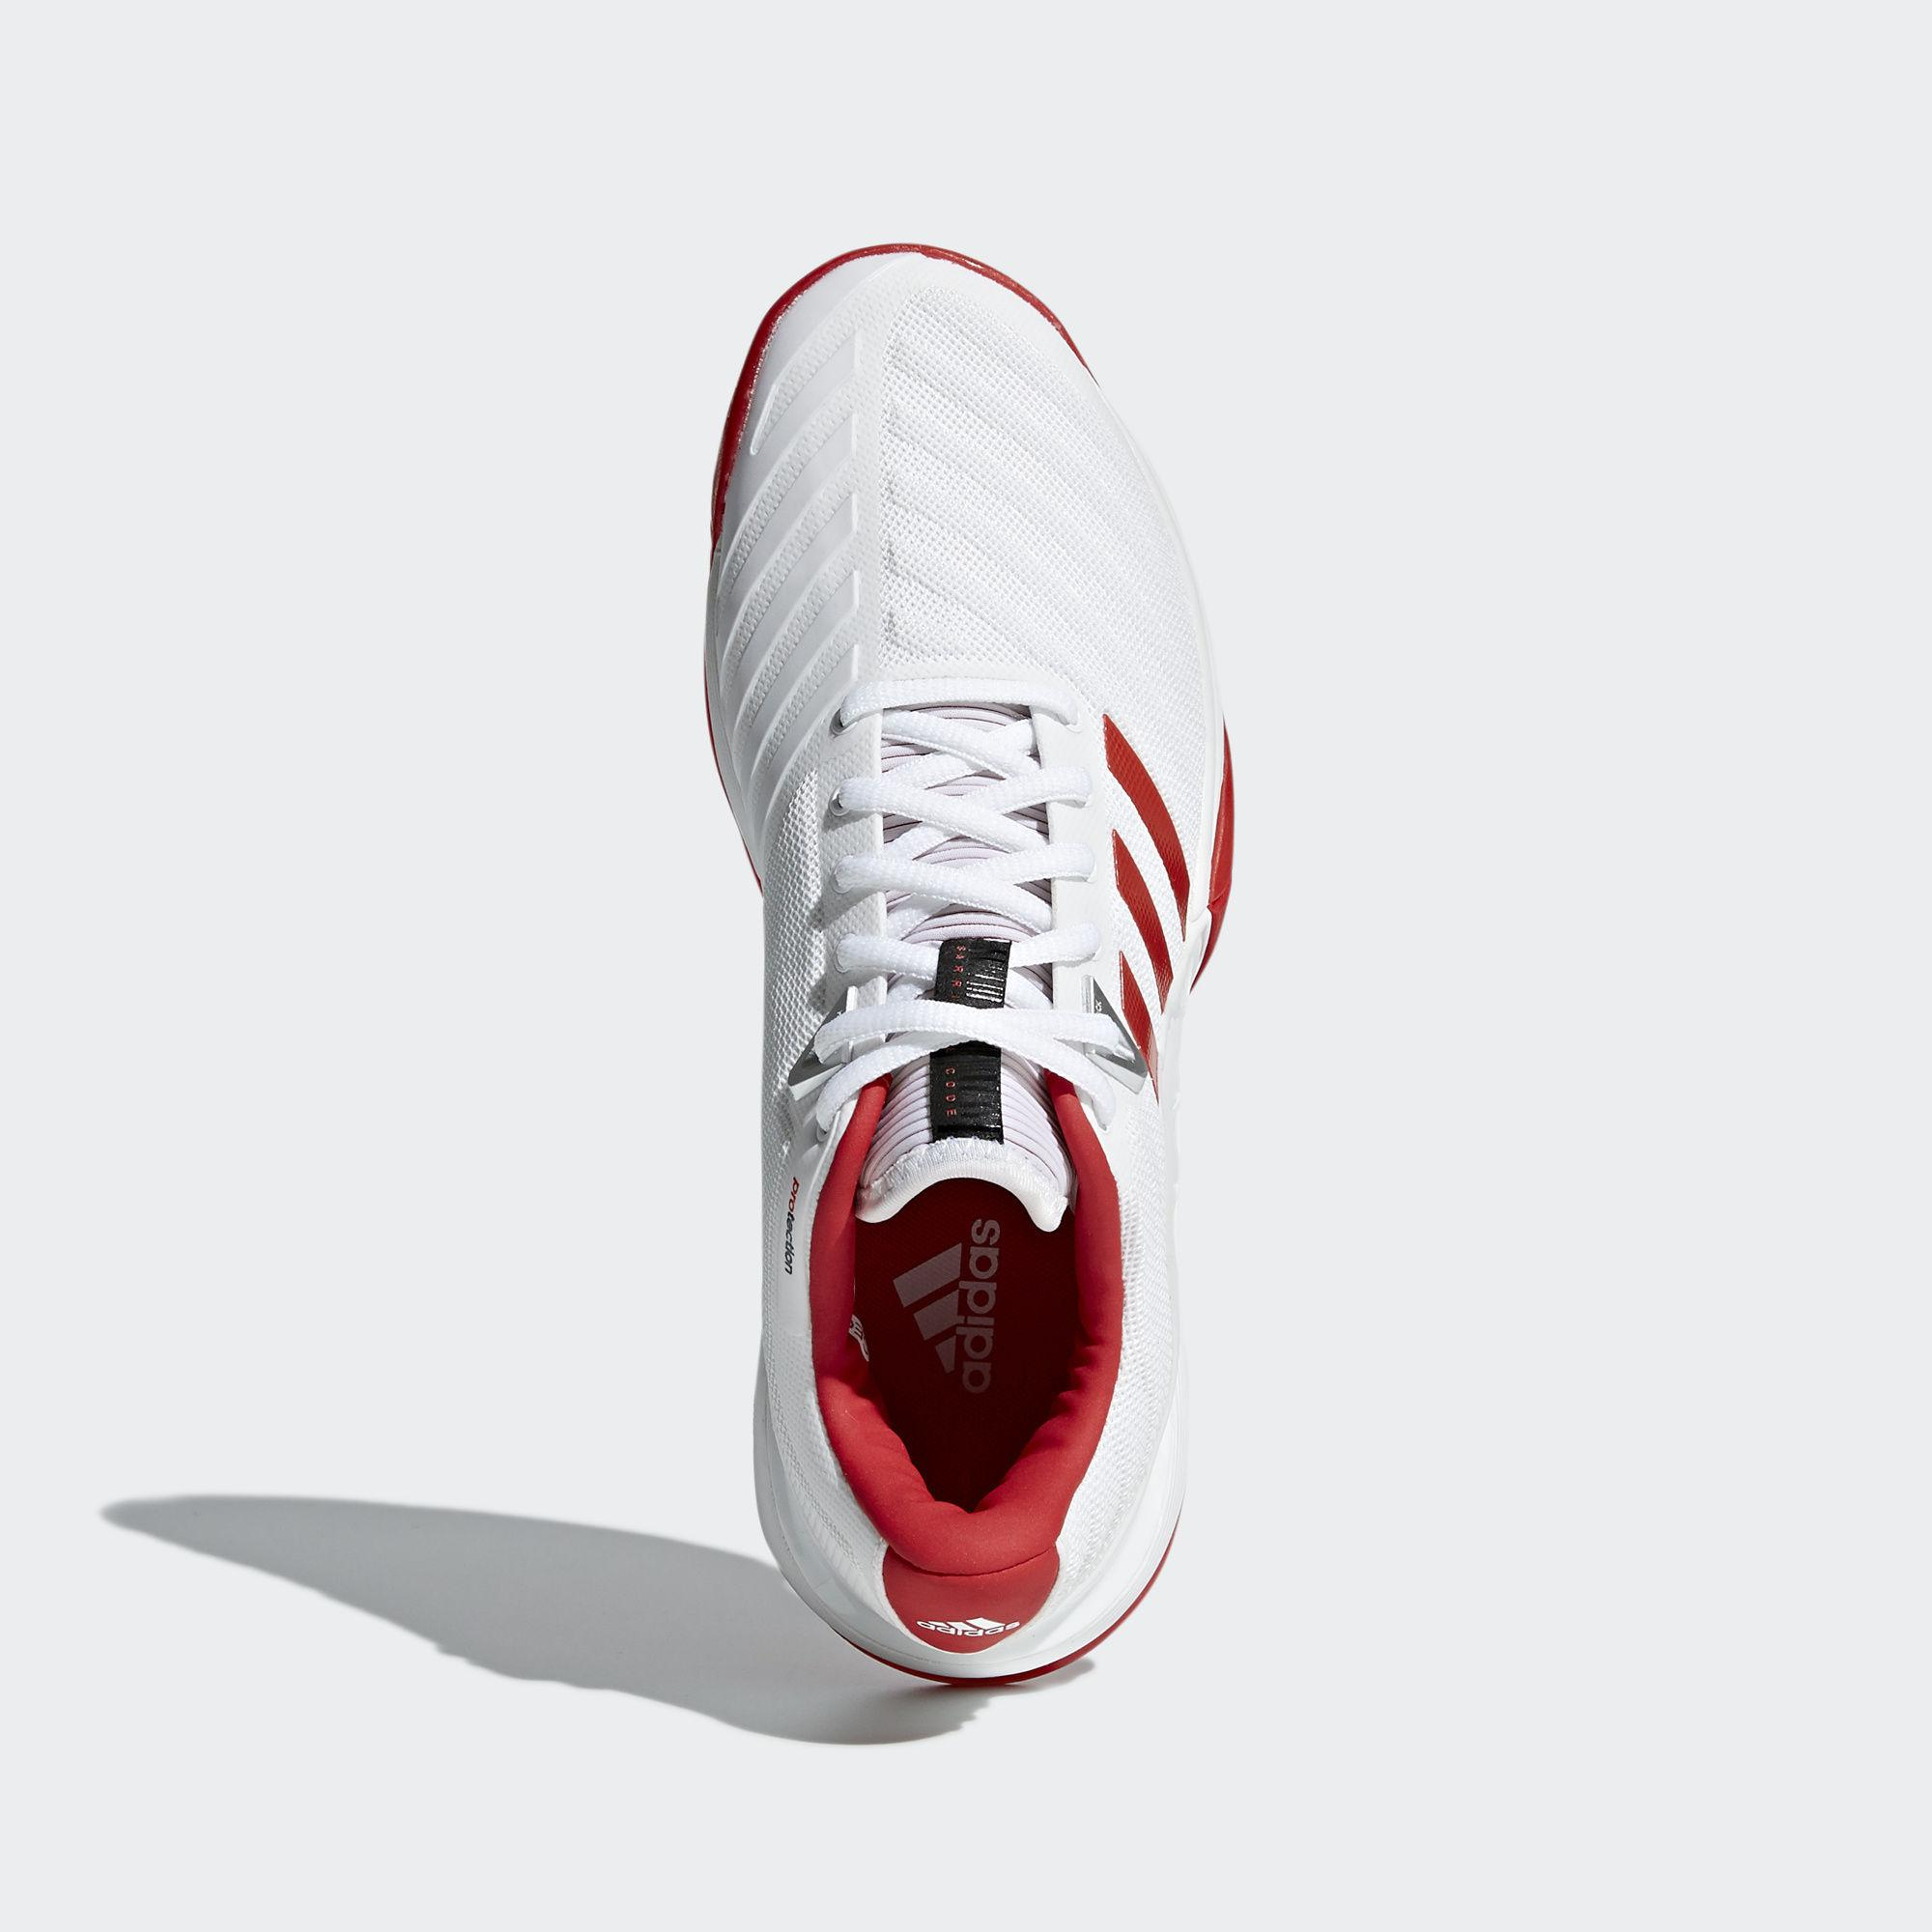 c9fde3fc42ded3 Adidas Womens Barricade 2018 Tennis Shoes - White Red - Tennisnuts.com